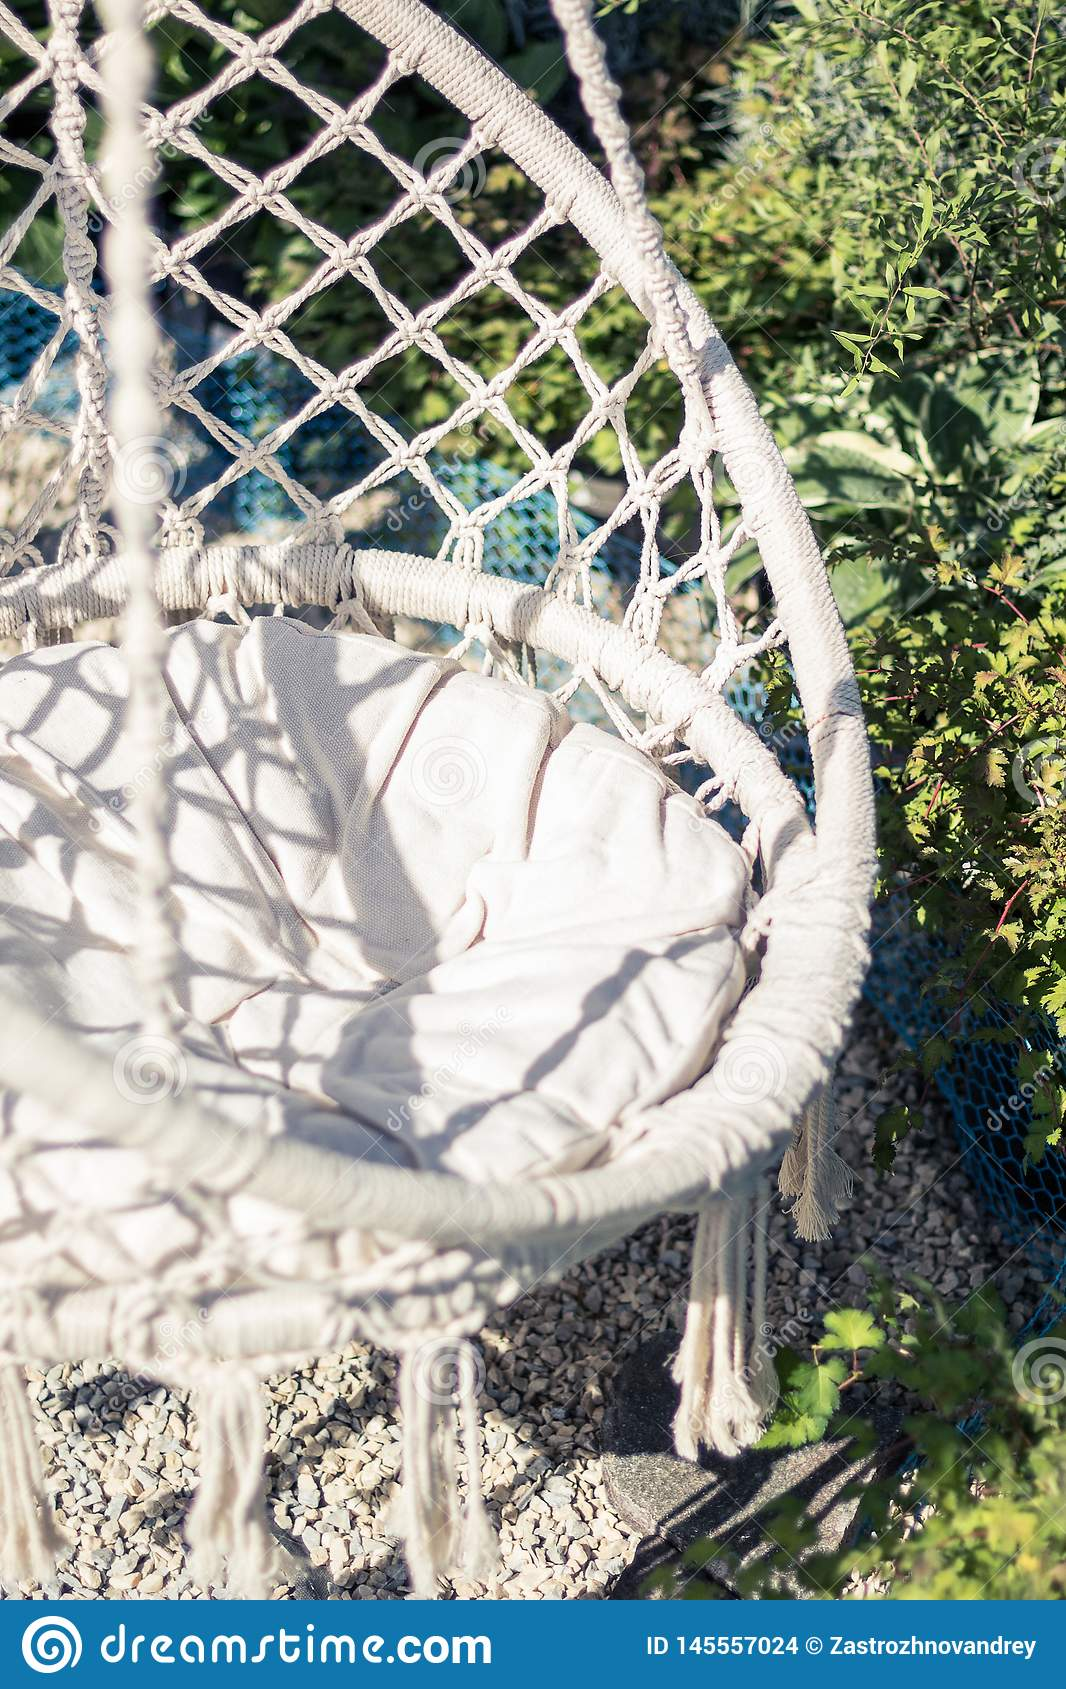 White rope chair in the garden. Close-up